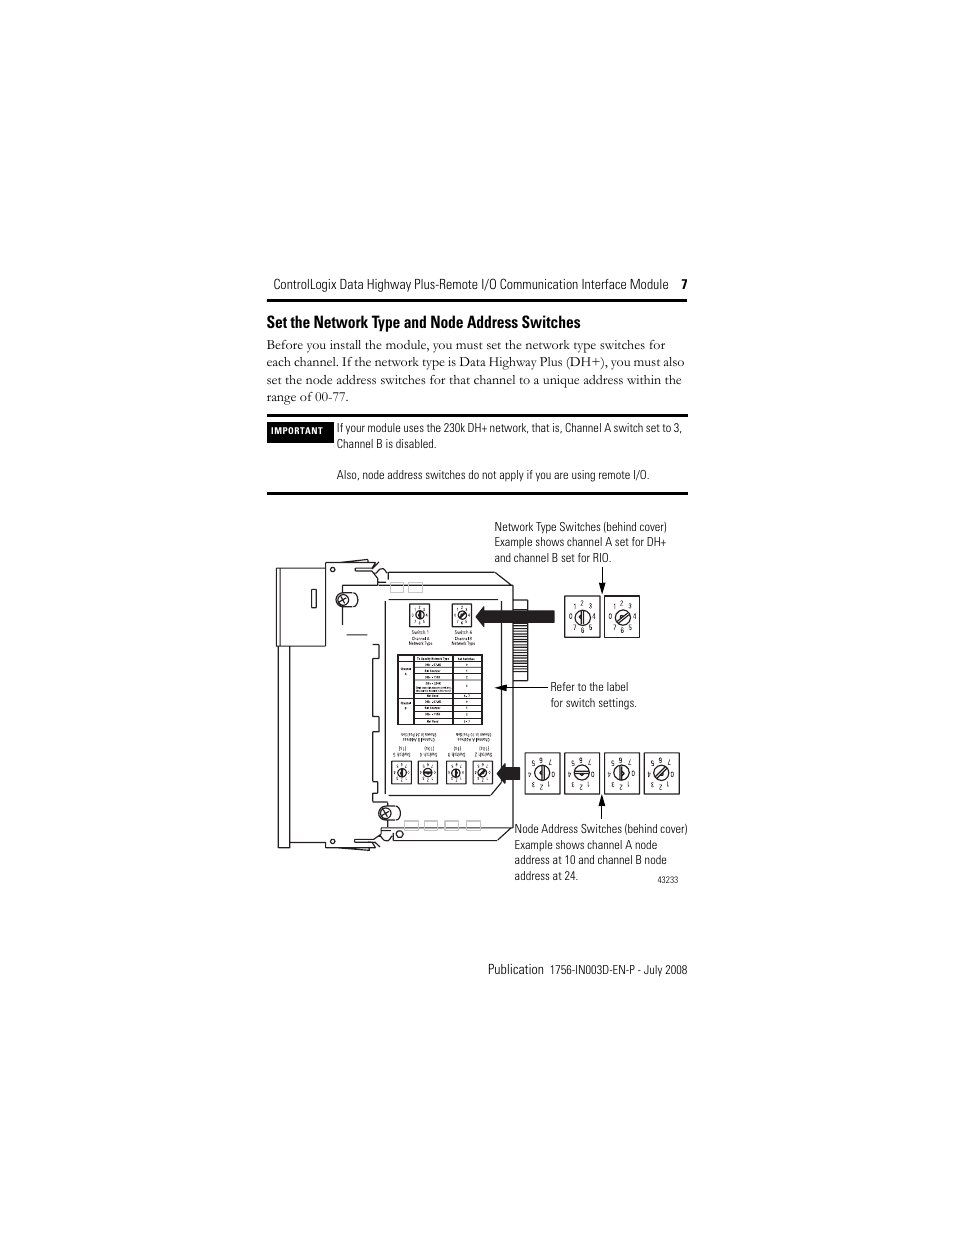 set the network type and node address switches rockwell automationset the network type and node address switches rockwell automation 1756 dhrio controllogix data highway plus remote i o communication interface module